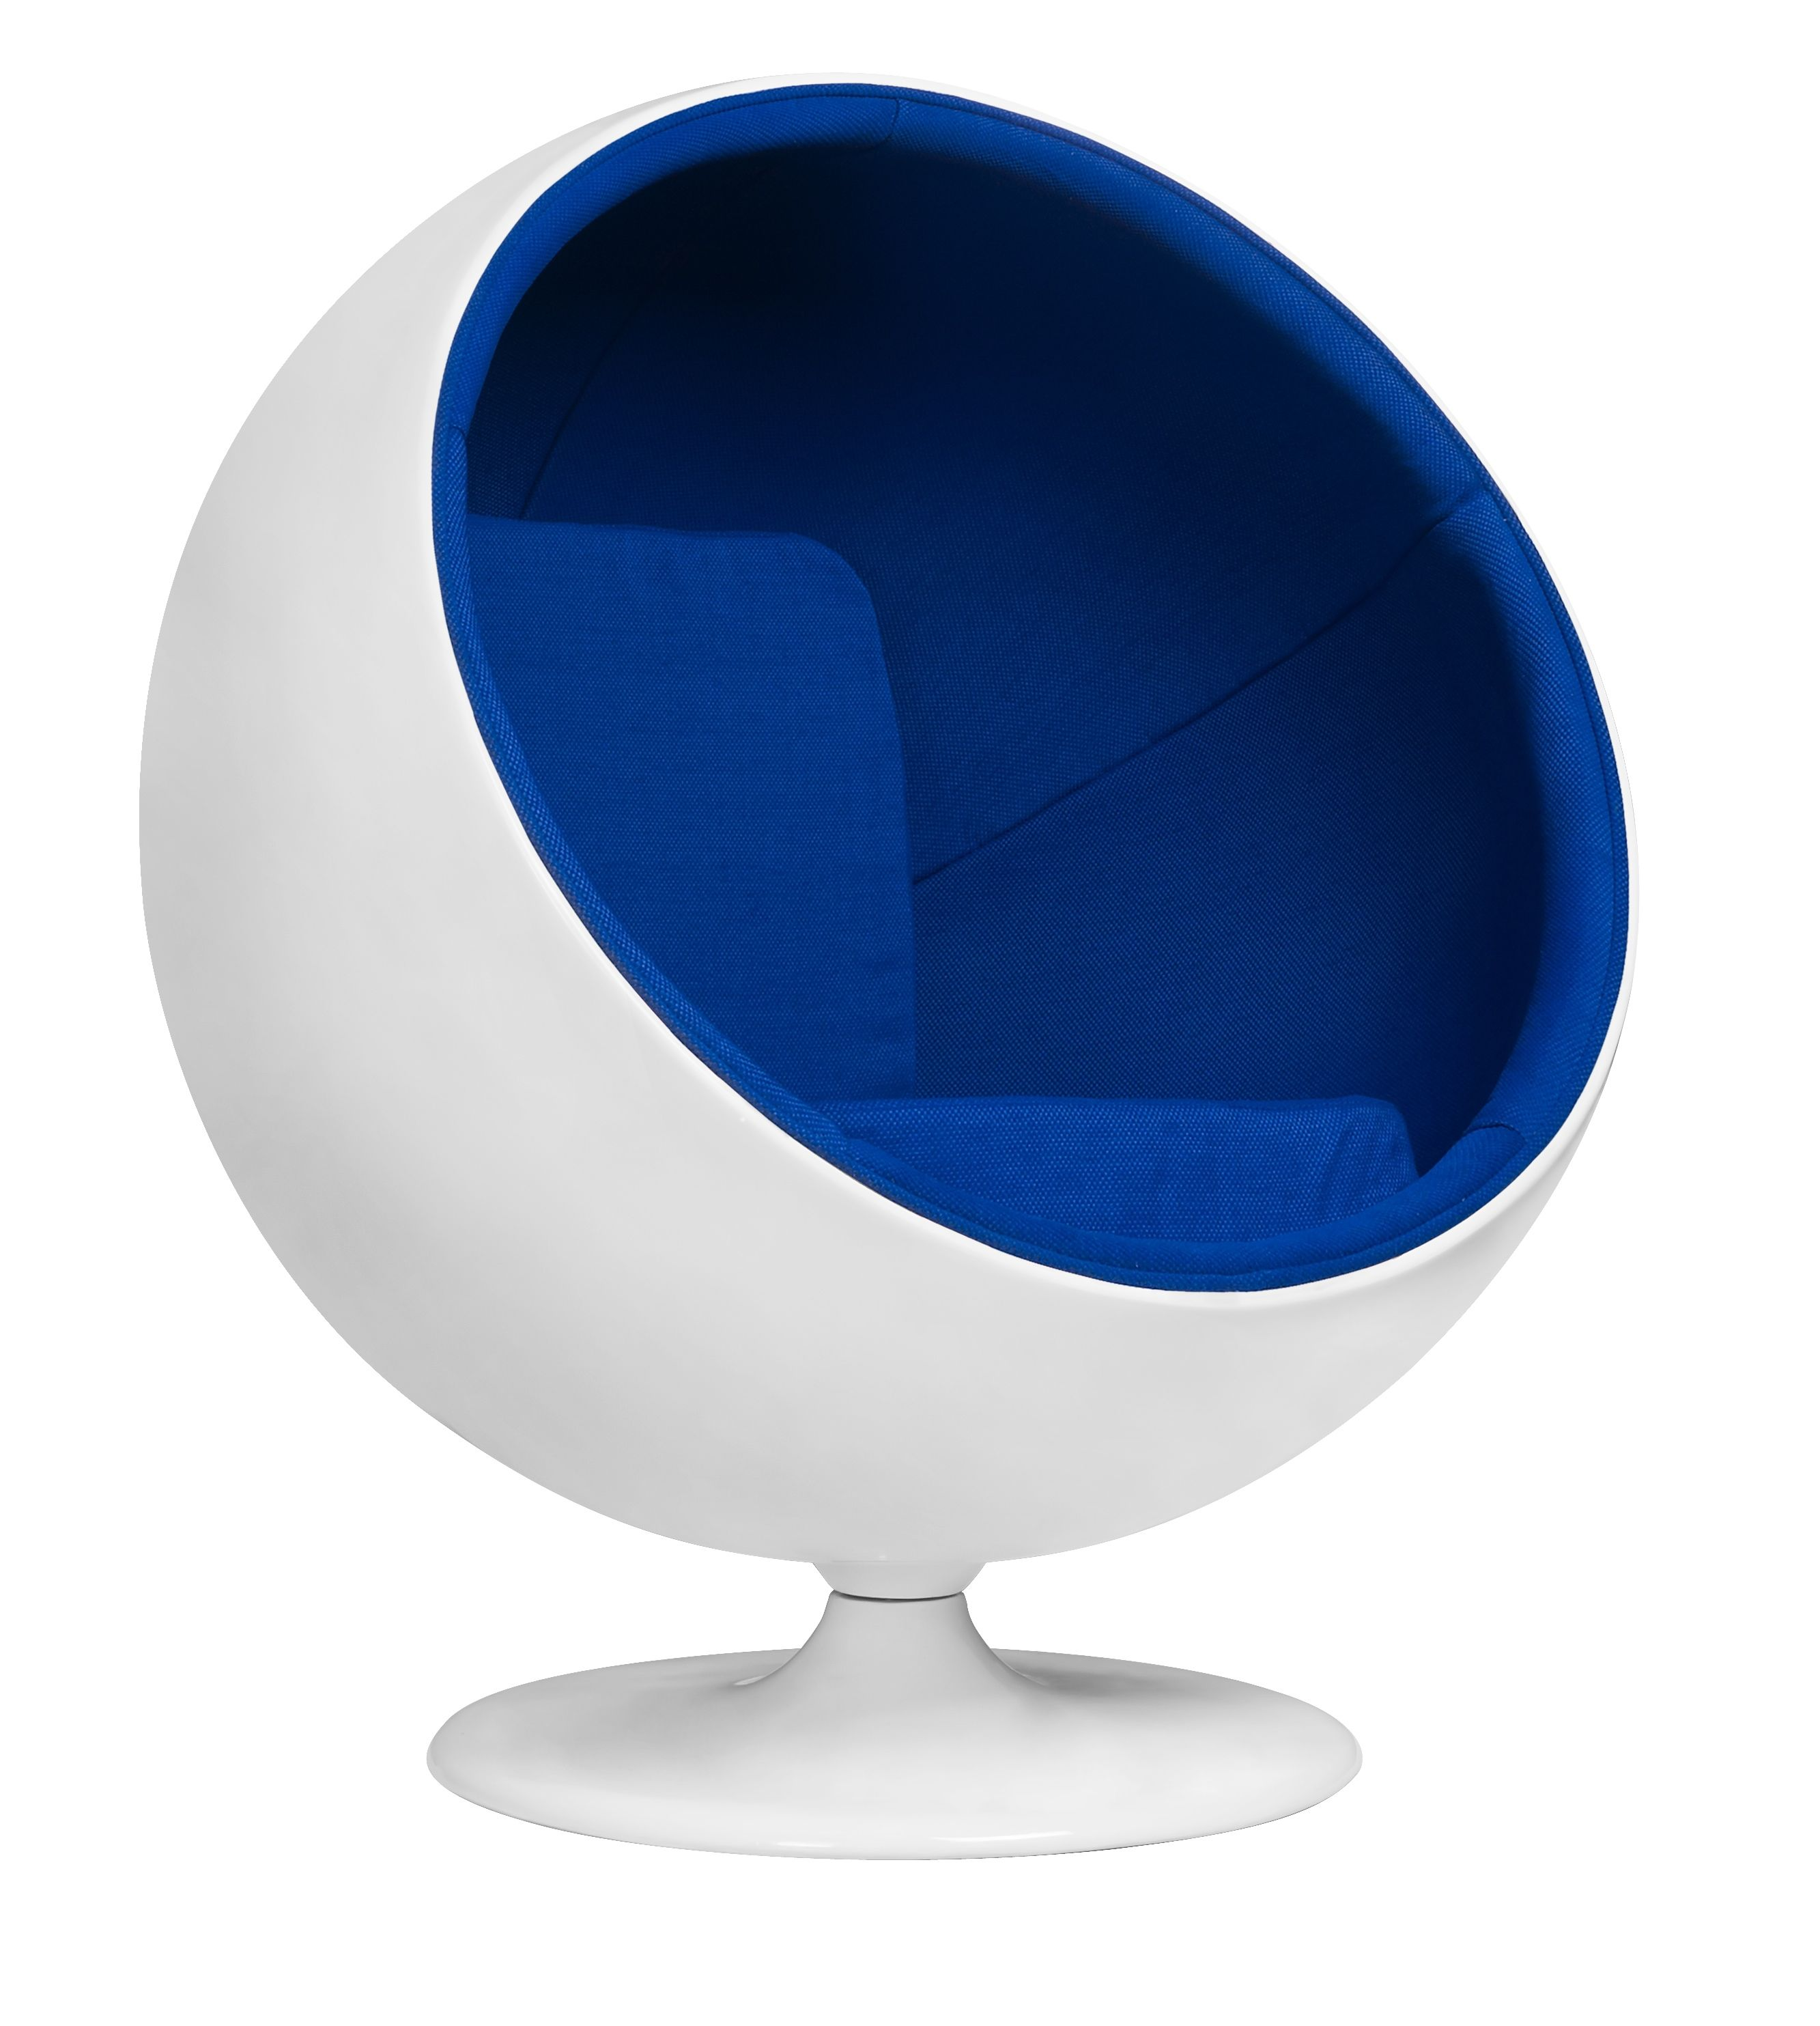 3025 Eero Saarinen Ball Chair Blue